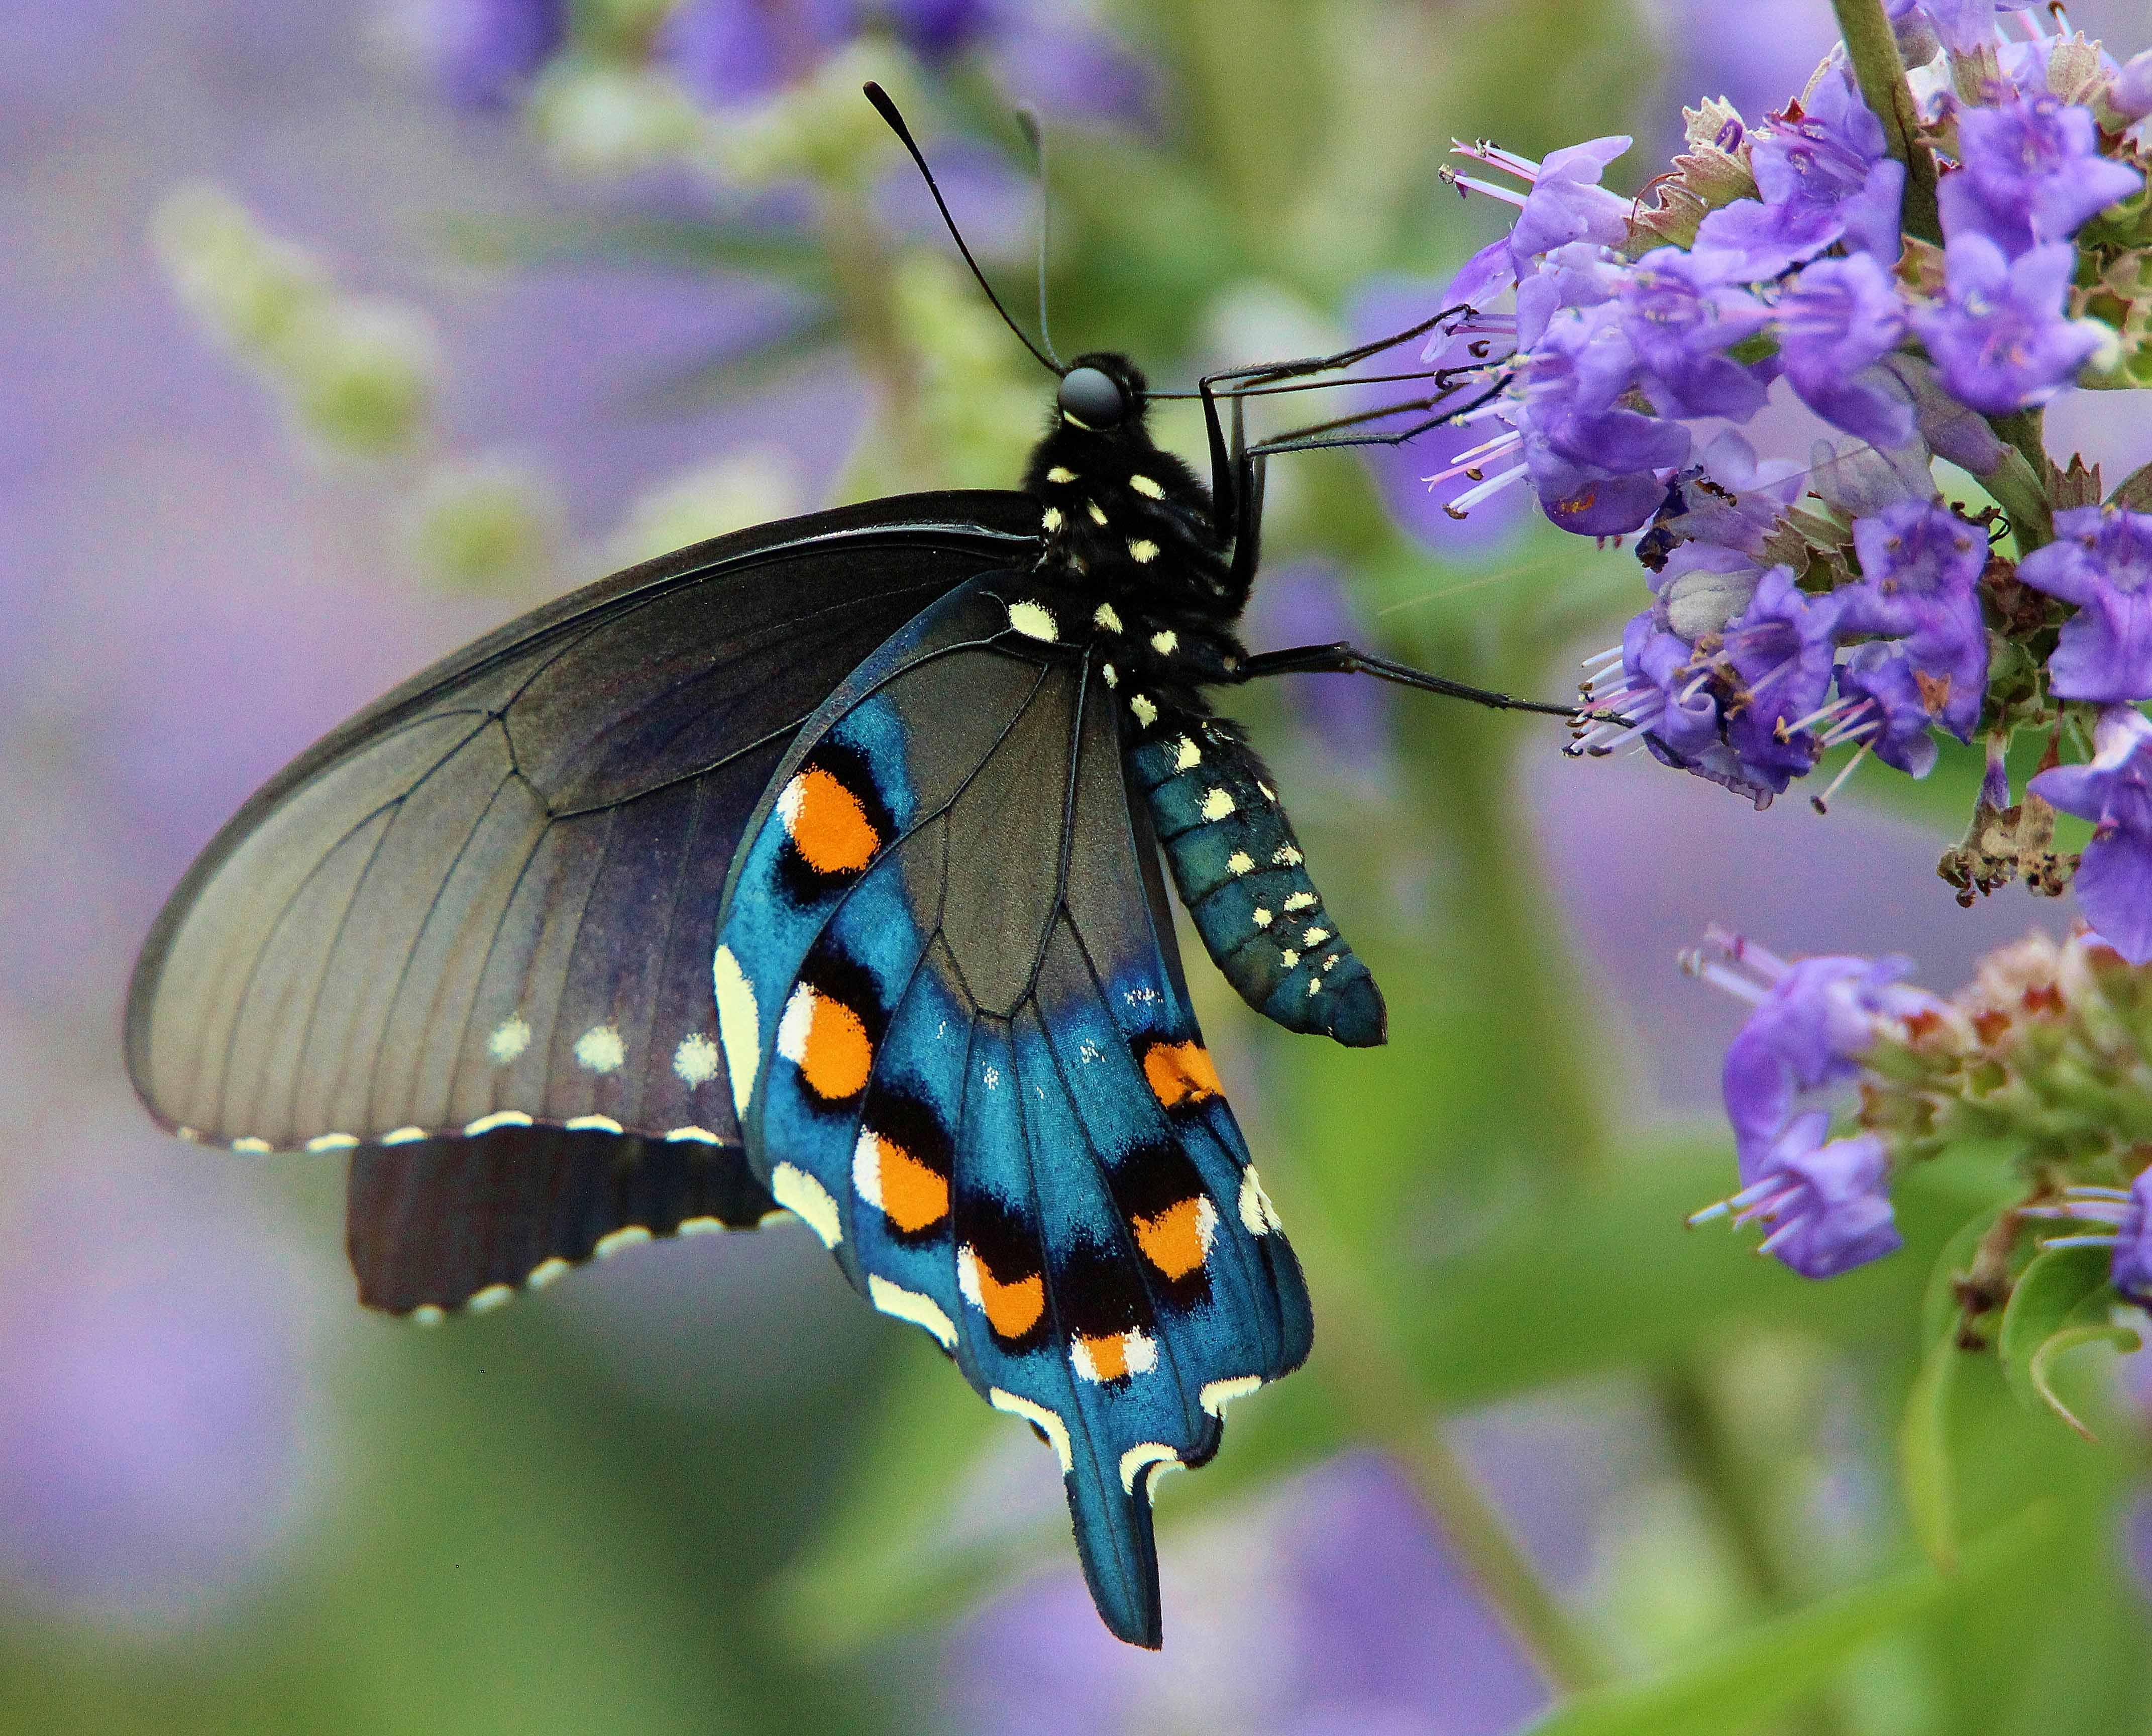 The Life of Animals: October 2011 |Pipevine Swallowtail Butterfly